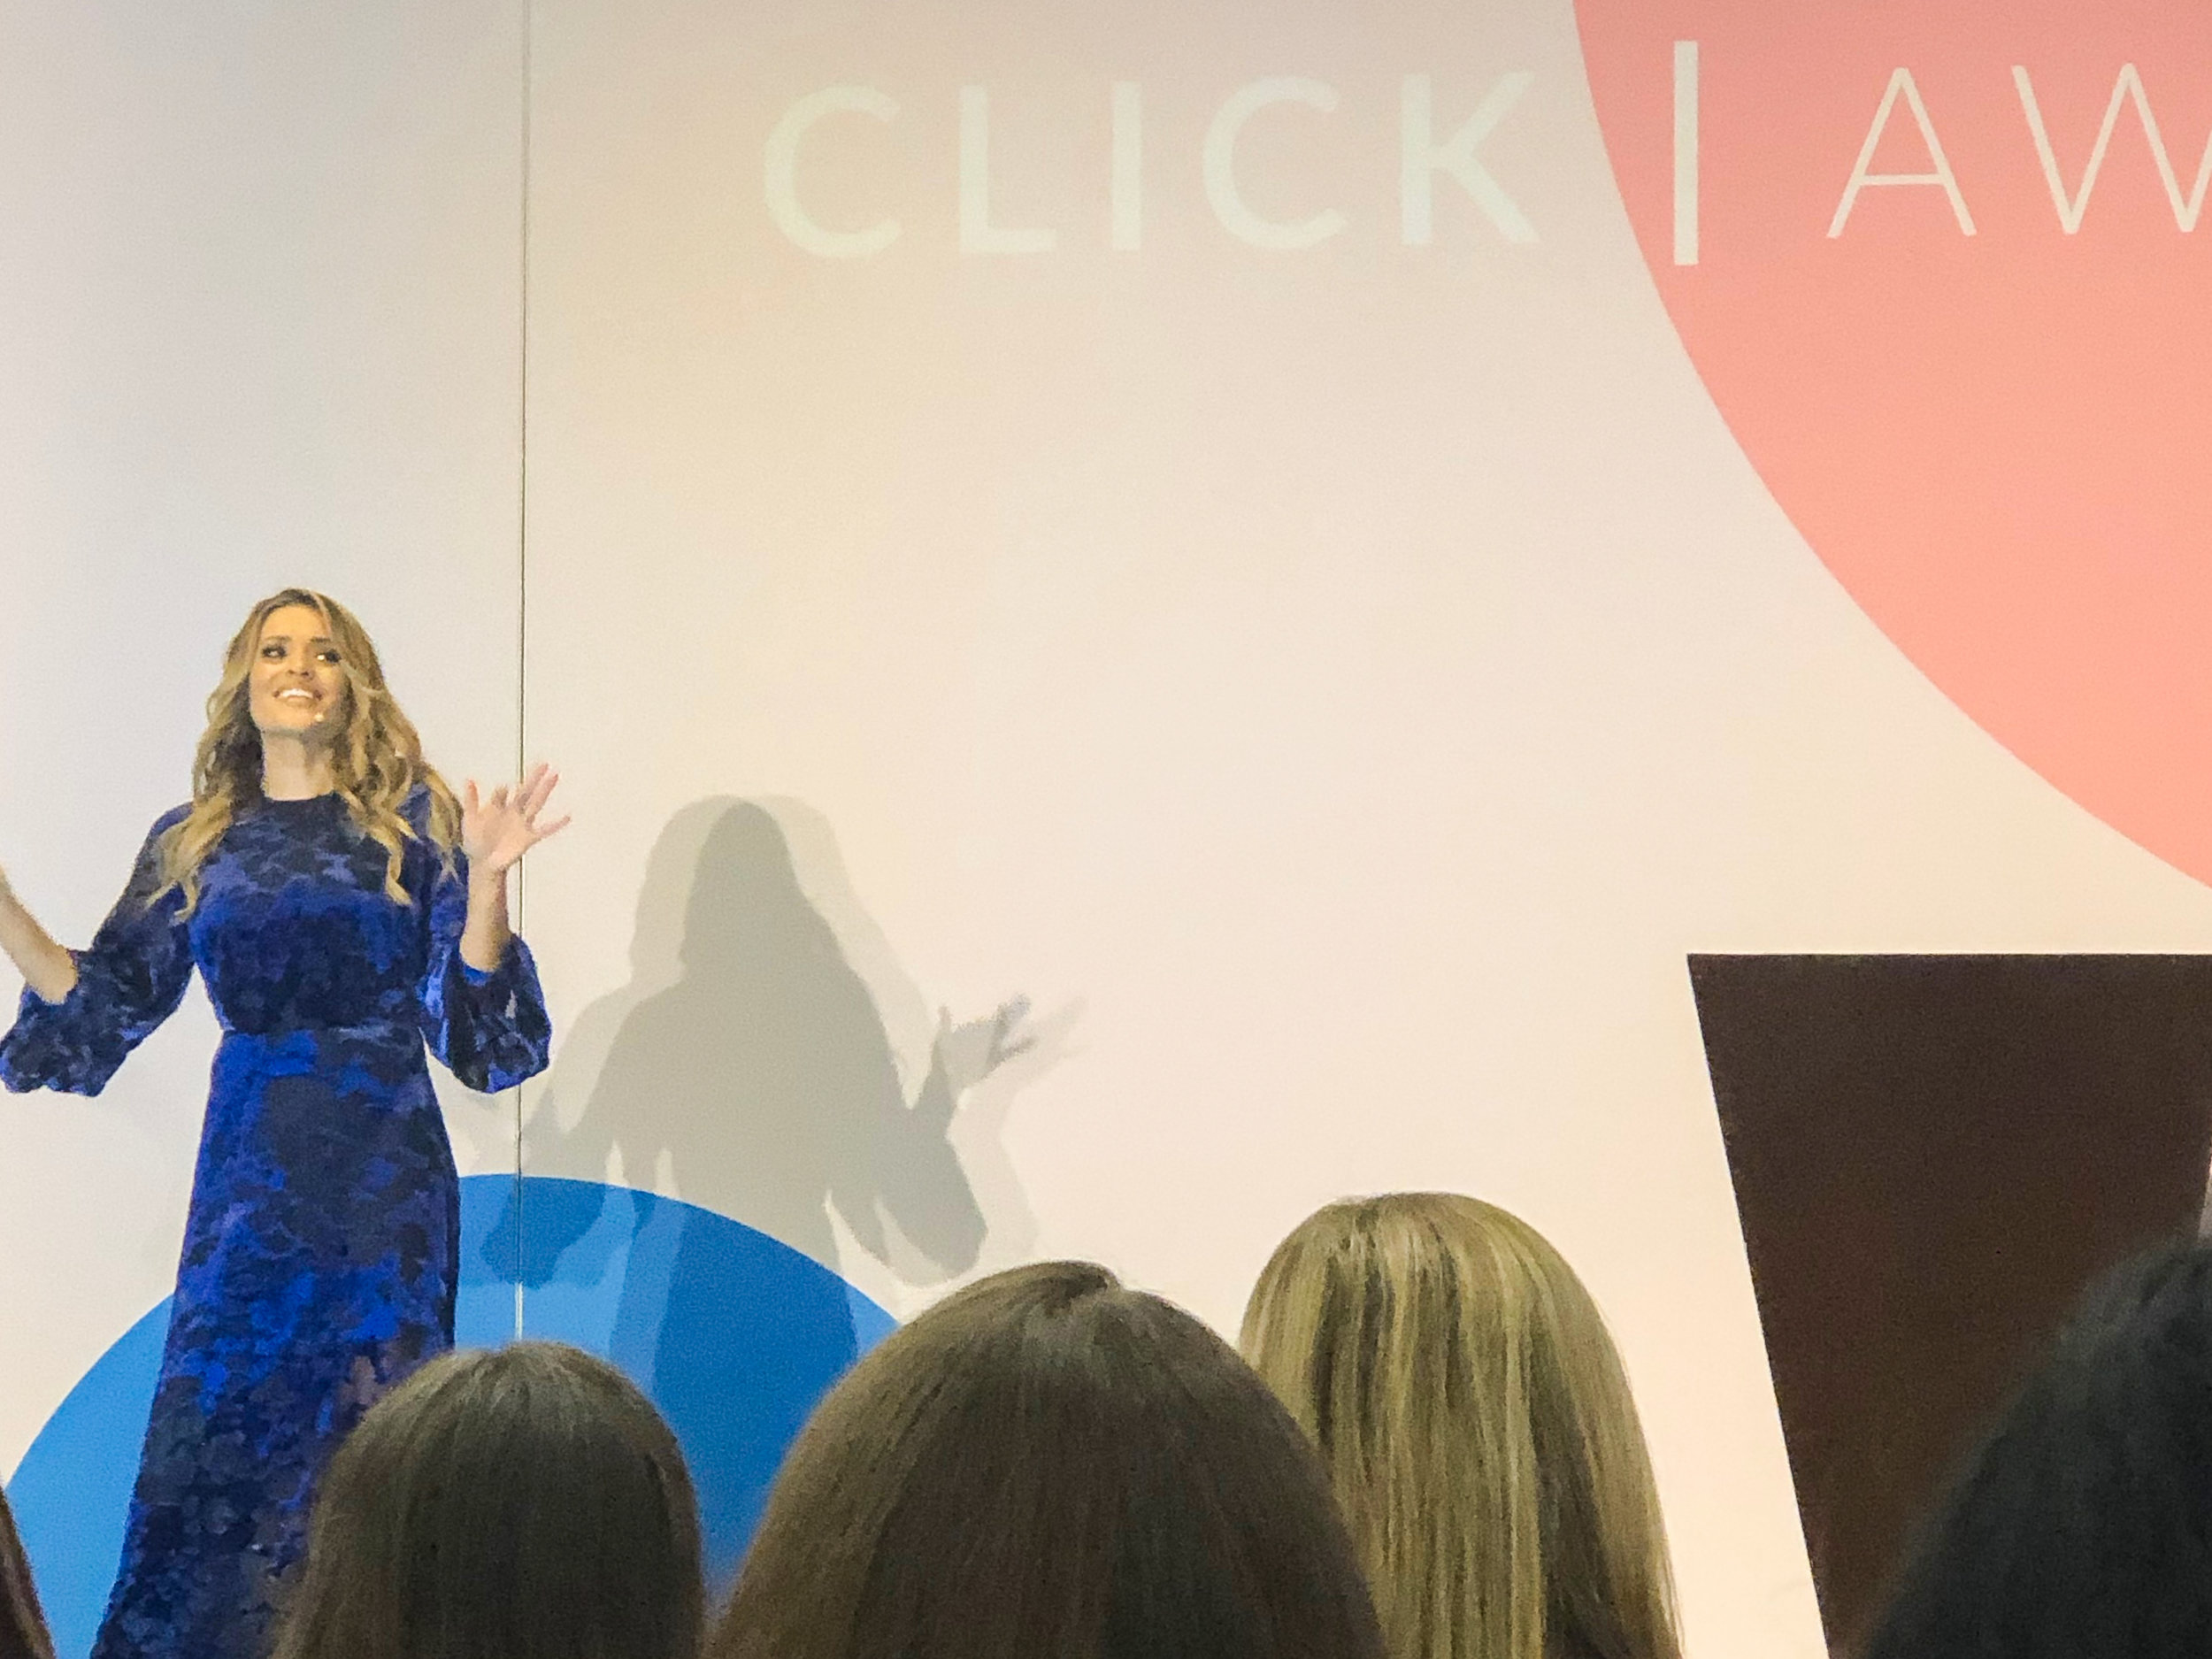 Listening to Jasmine Star talk about social media is like listening to your best friend tell you which dress you should wear. You know she's going to keep it real and steer you in the right direction.